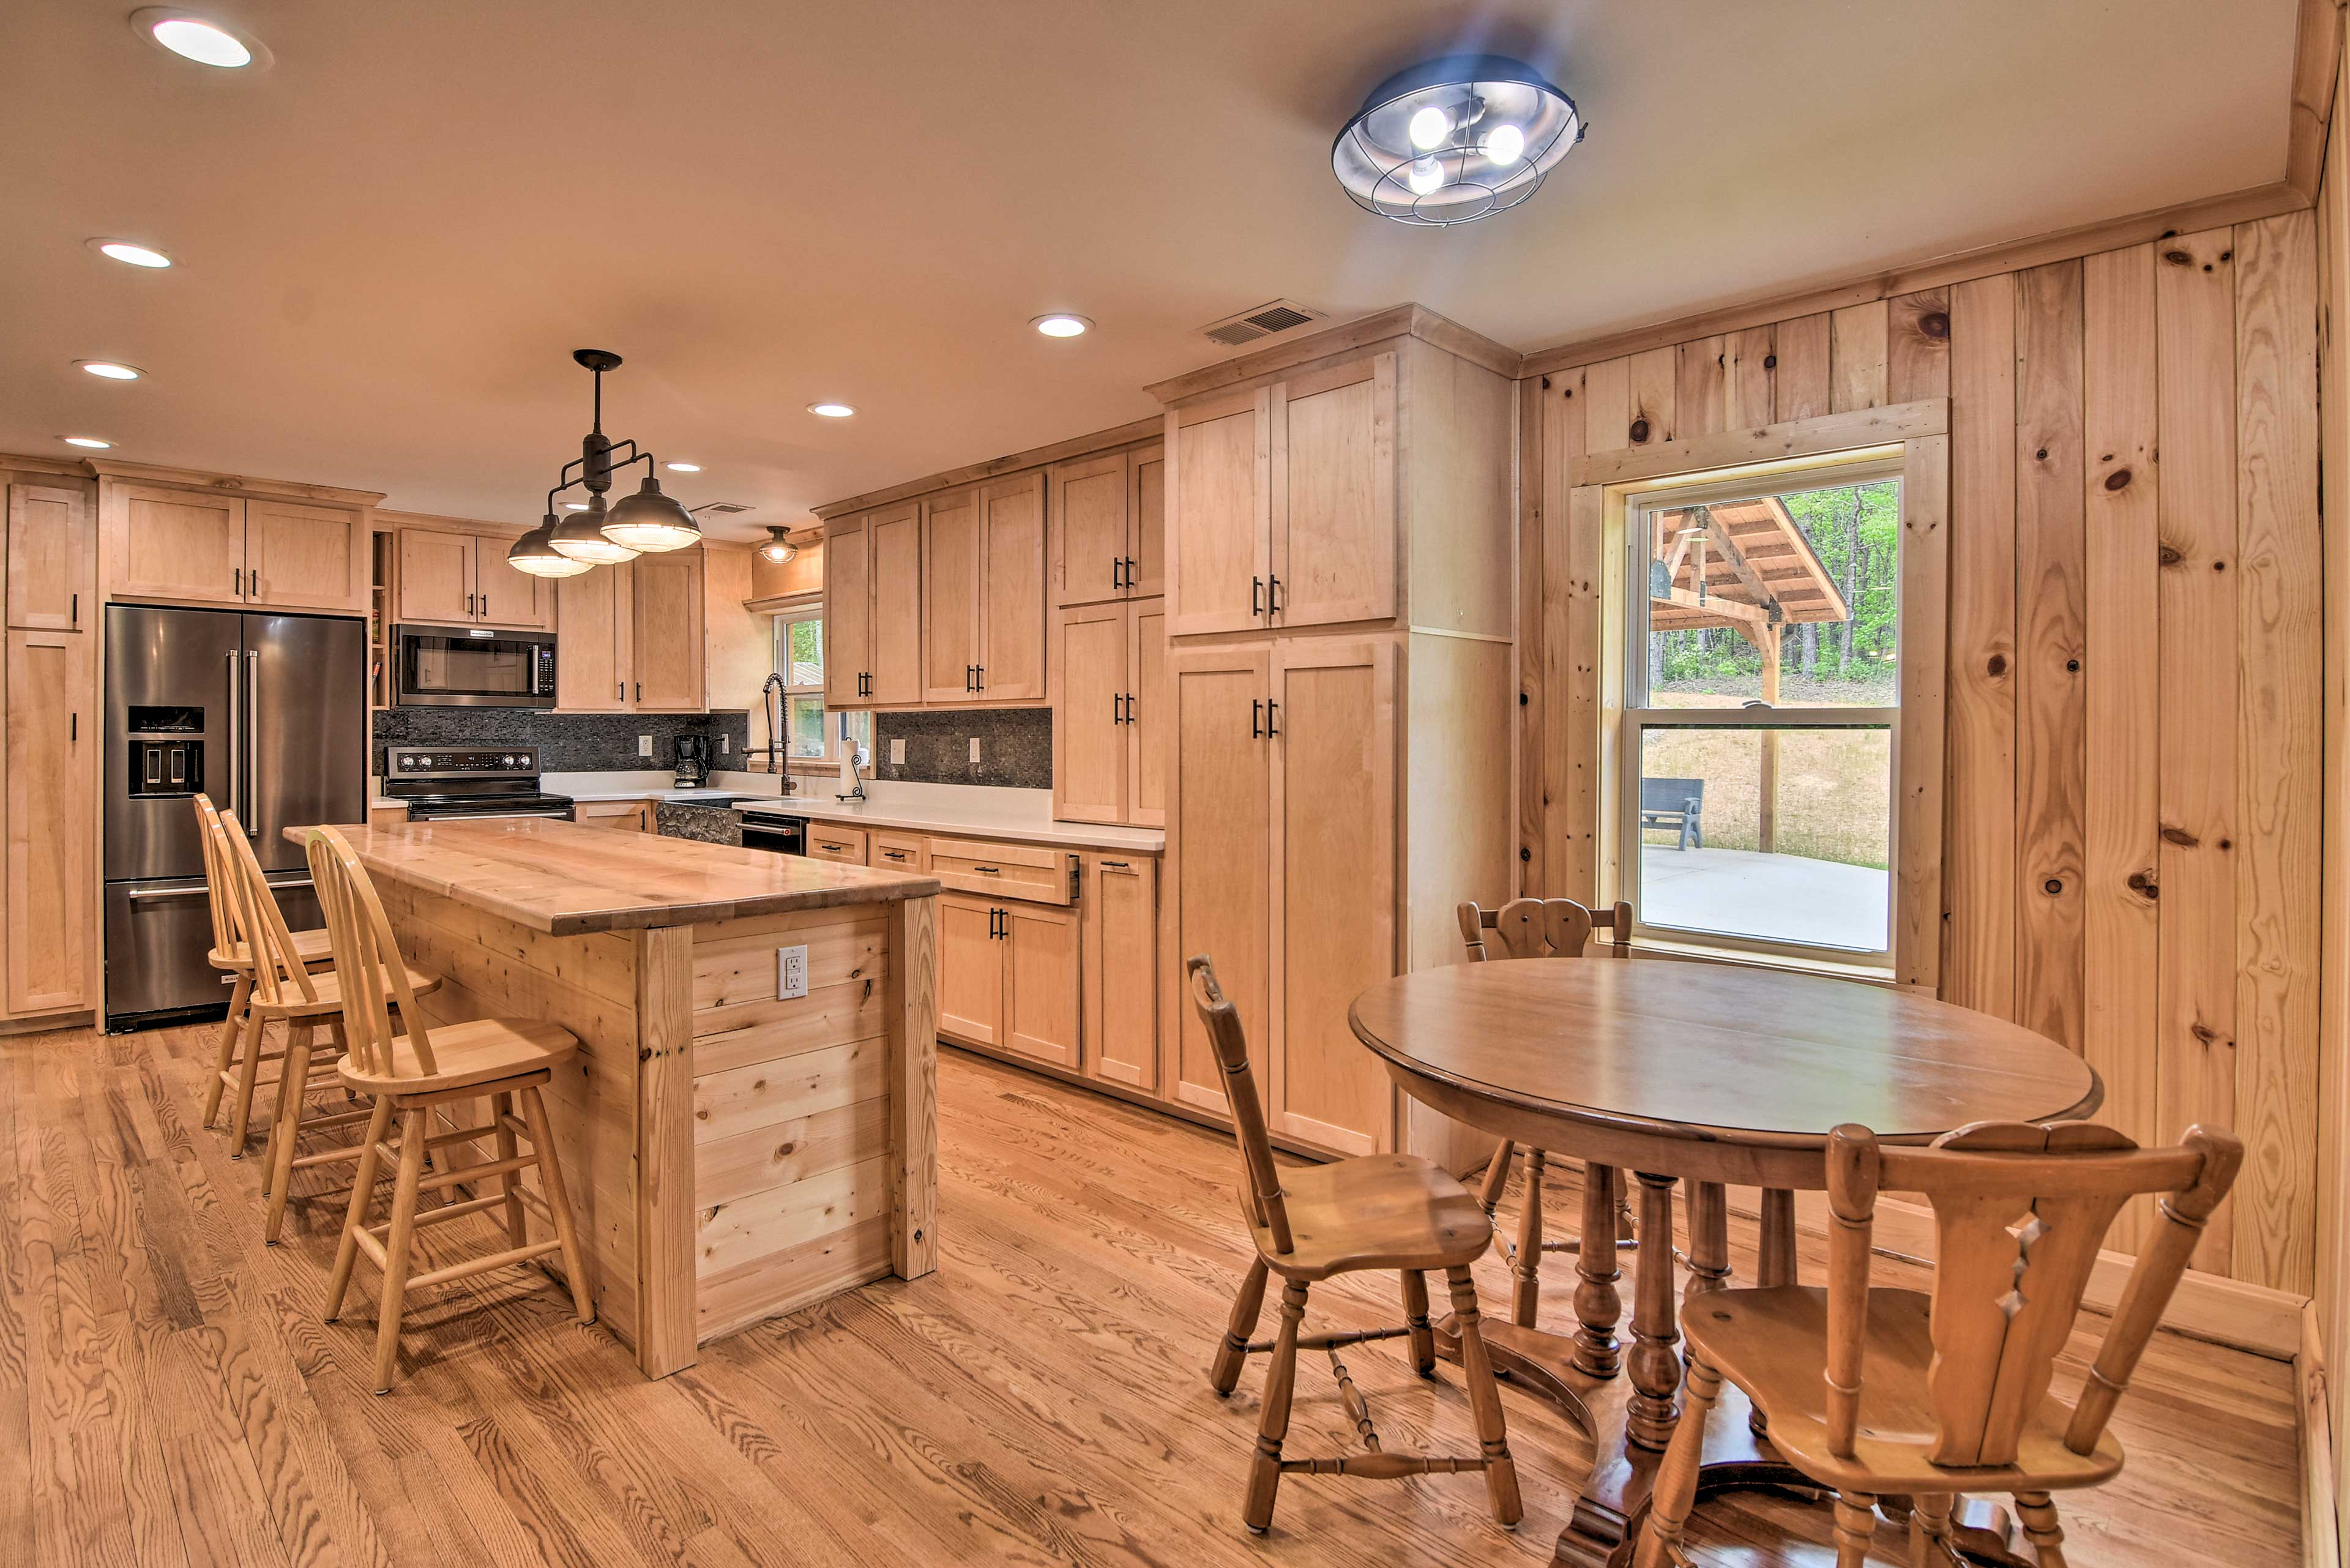 The kitchen boasts a dishwasher and stainless steel appliances.